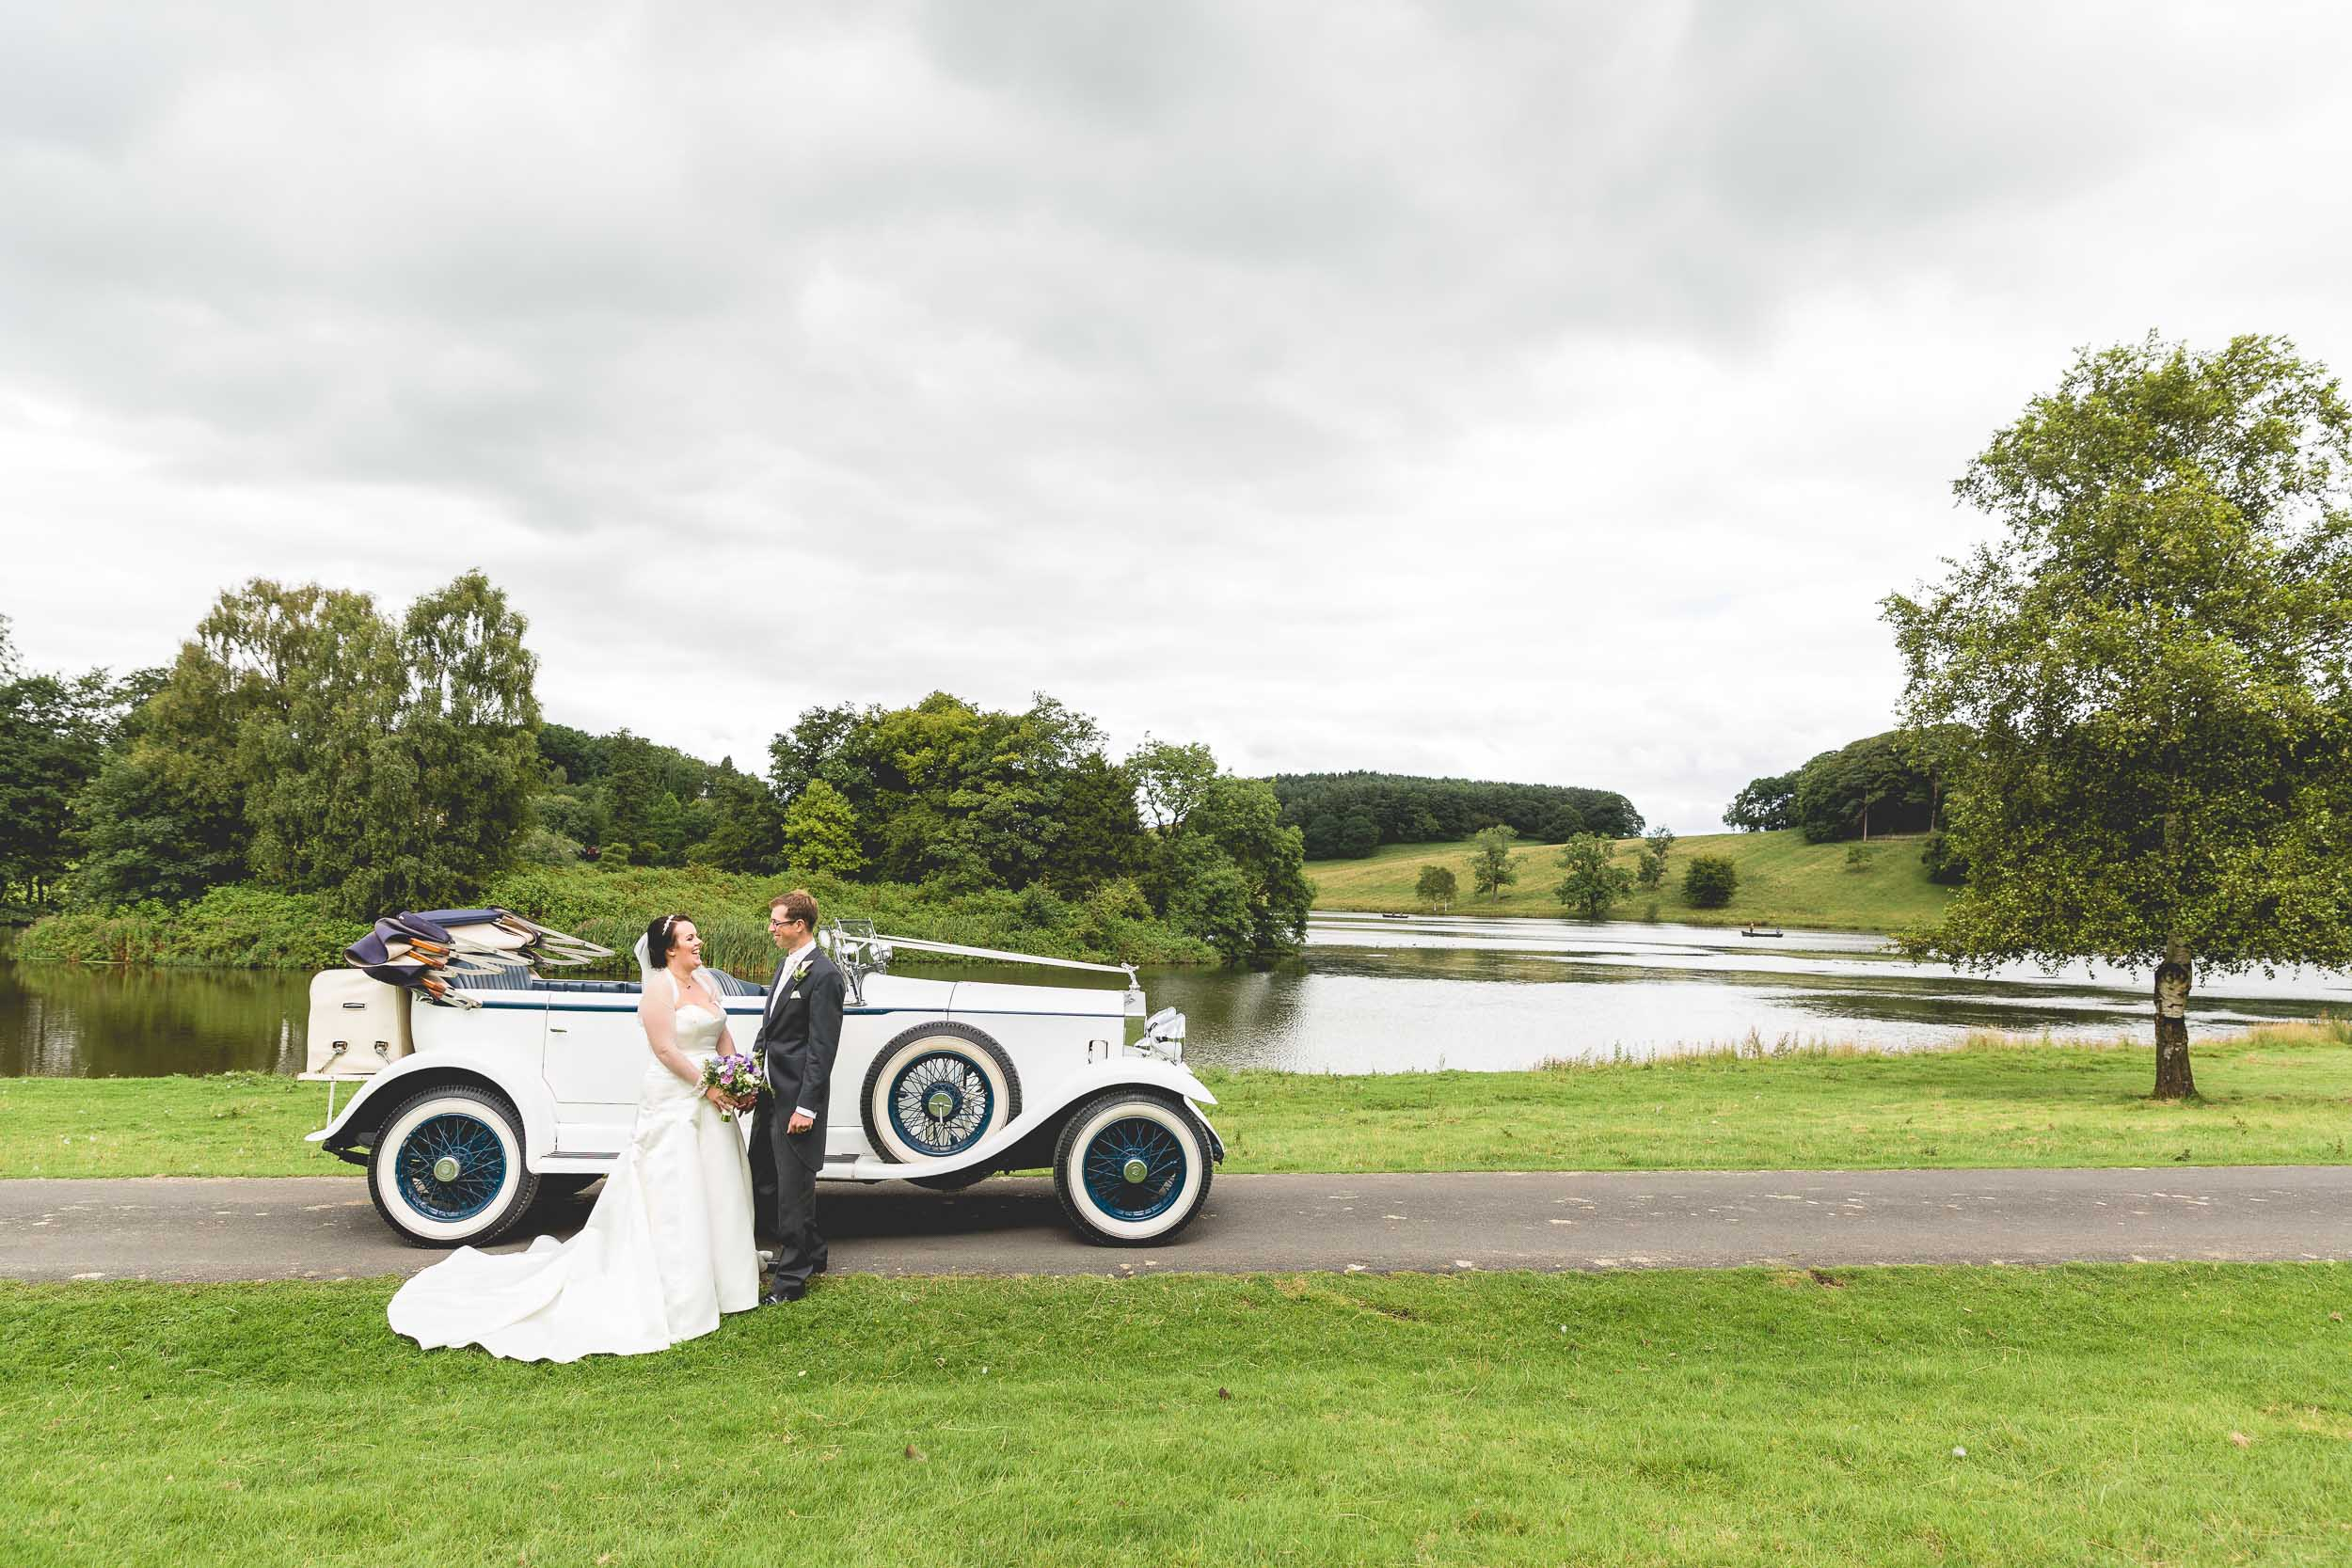 Nicola & Matt-Wedding-Coniston Cold Hotel-Yorkshire-photo-0339.jpg